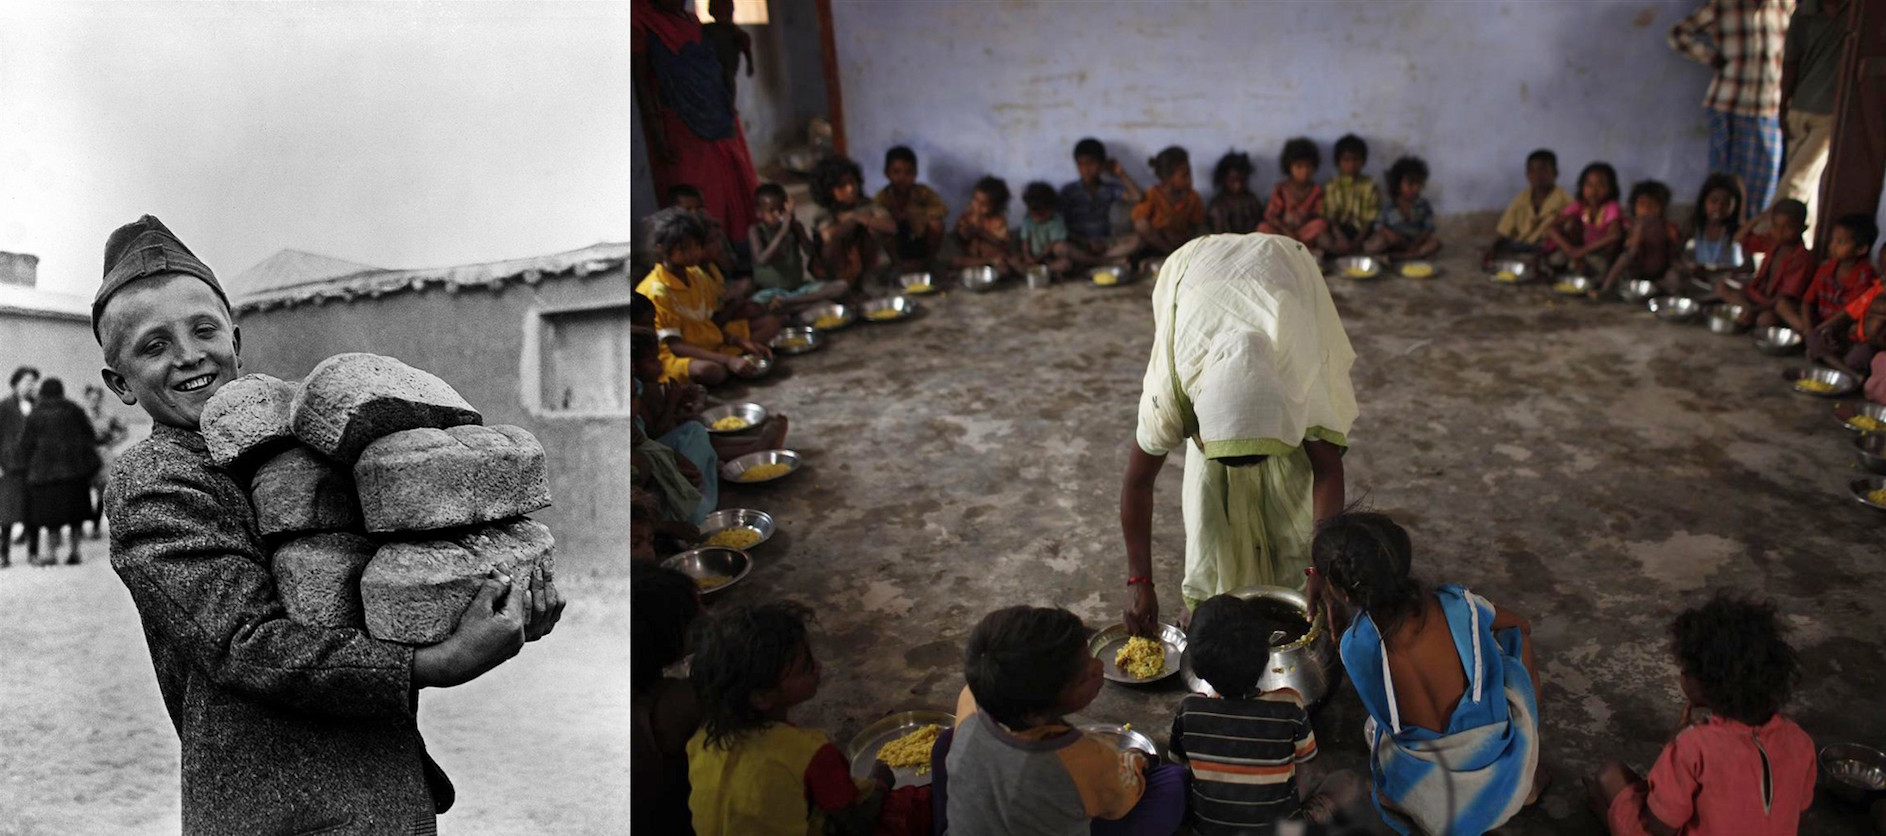 (Left) In 1946 in Poland, a smiling boy carries six loaves of bread. In 2009 in India, malnourished children receive a meal of rice and dal in Sullineabad Village where basic health education, nutrition services are provided at the village level for child